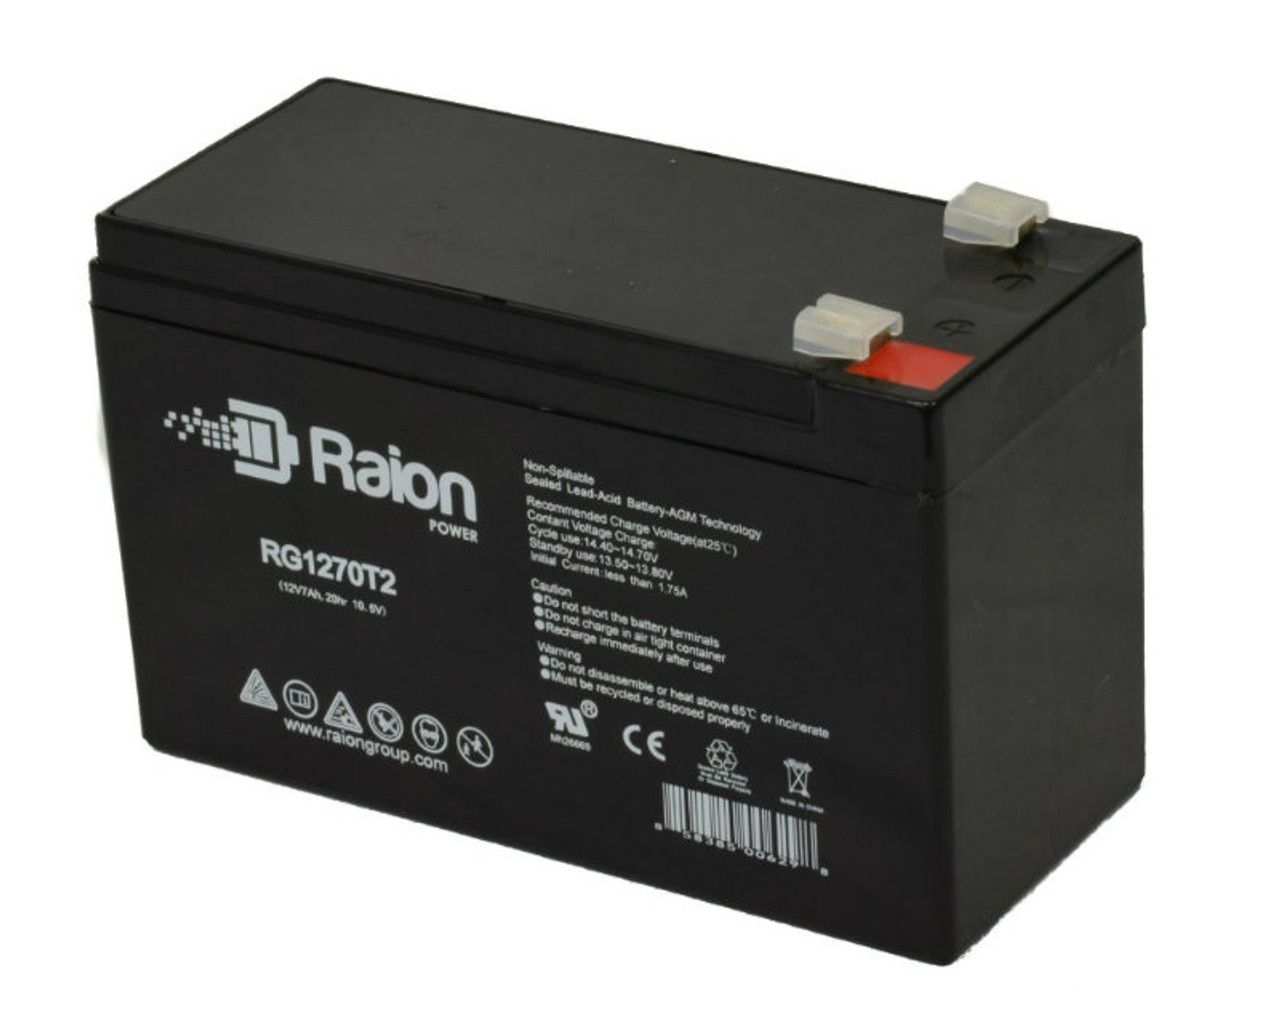 Raion Power RG1270T1 Replacement Battery for Japan PE12V6.5